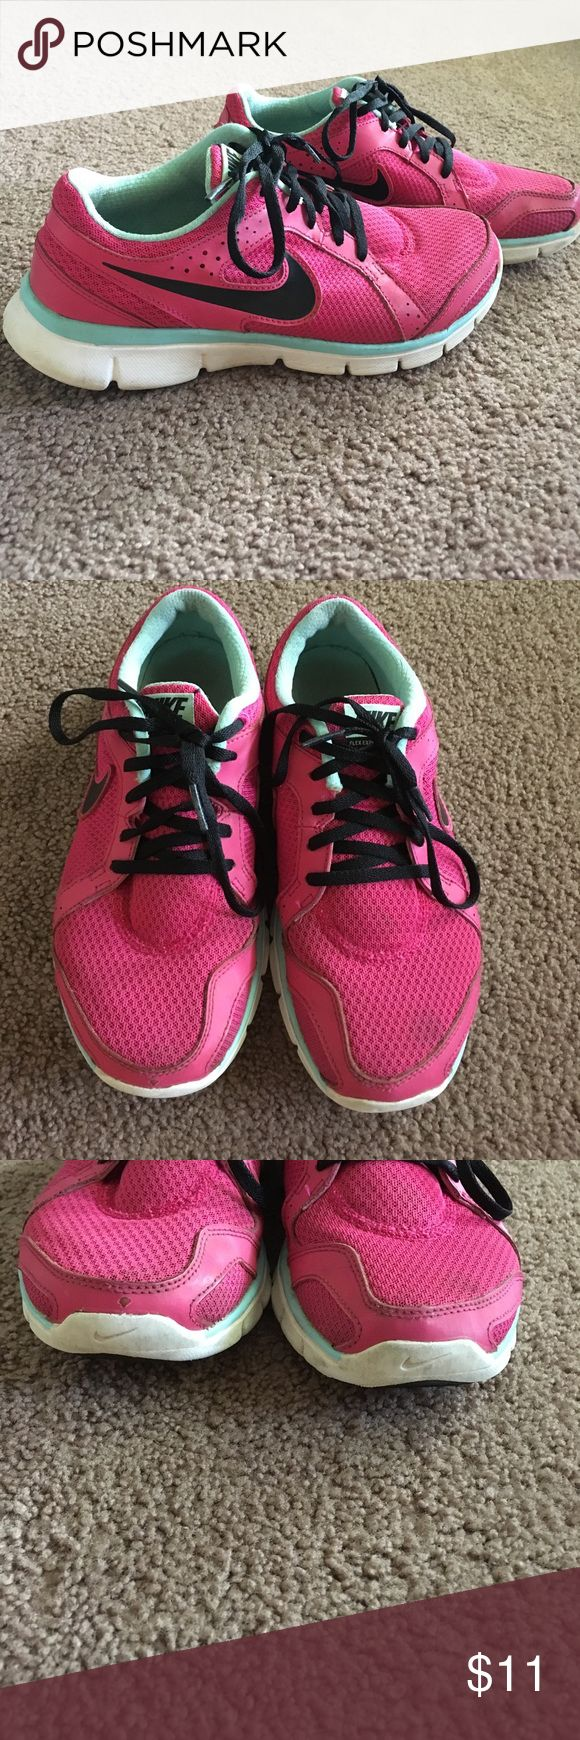 Nike Shoes Nike Flex Experience Run 2. Used but with lots of life left. Super comfortable! Nike Shoes Athletic Shoes